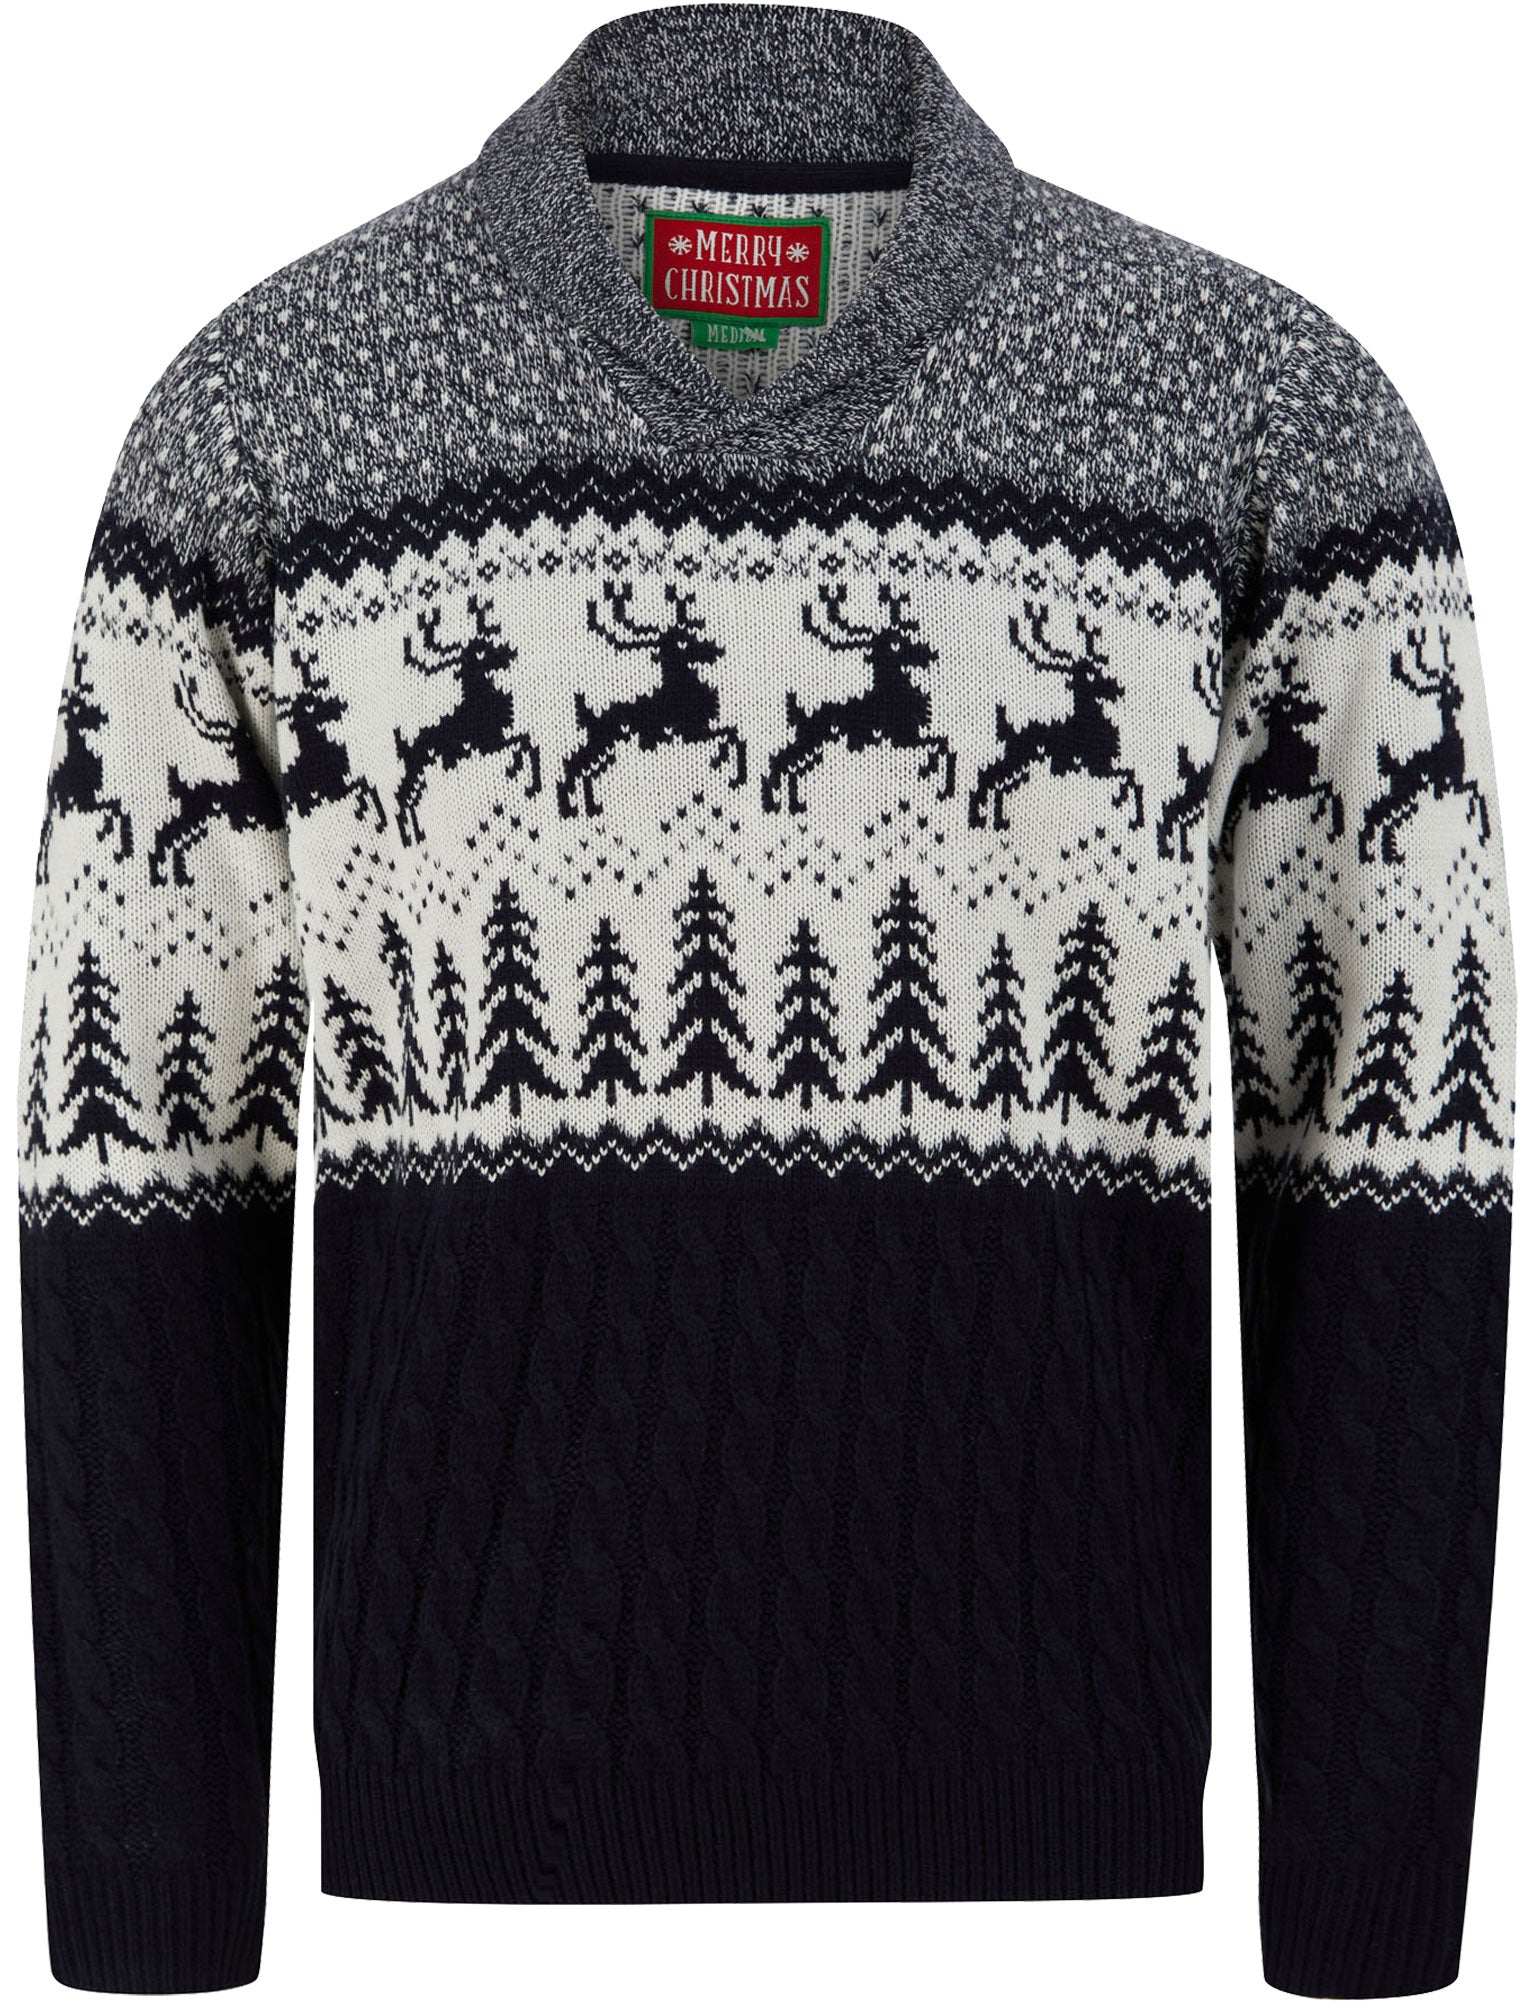 Men's Vintage Sweaters, Retro Jumpers 1920s to 1980s Jumpers Jumping Deer Shawl Neck Jacquard Knit Jumper in Ink  Merry Christmas  XXL - Tokyo Laundry £24.99 AT vintagedancer.com